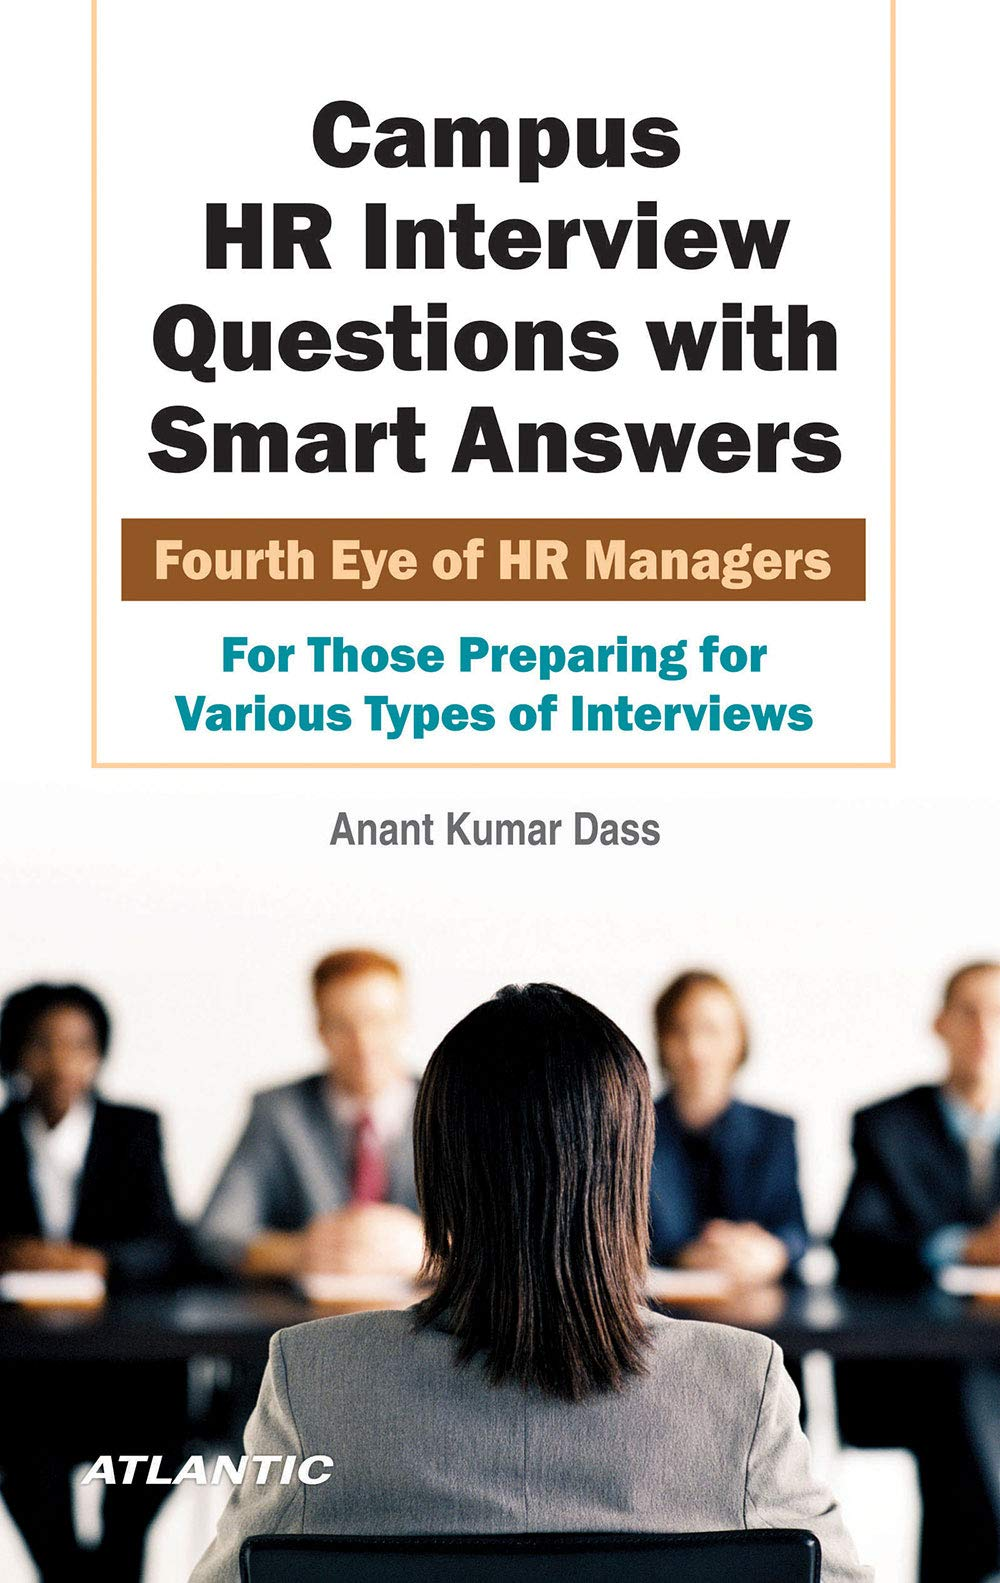 Campus HR Interview Questions with Smart Answers: Fourth Eye of HR Managers